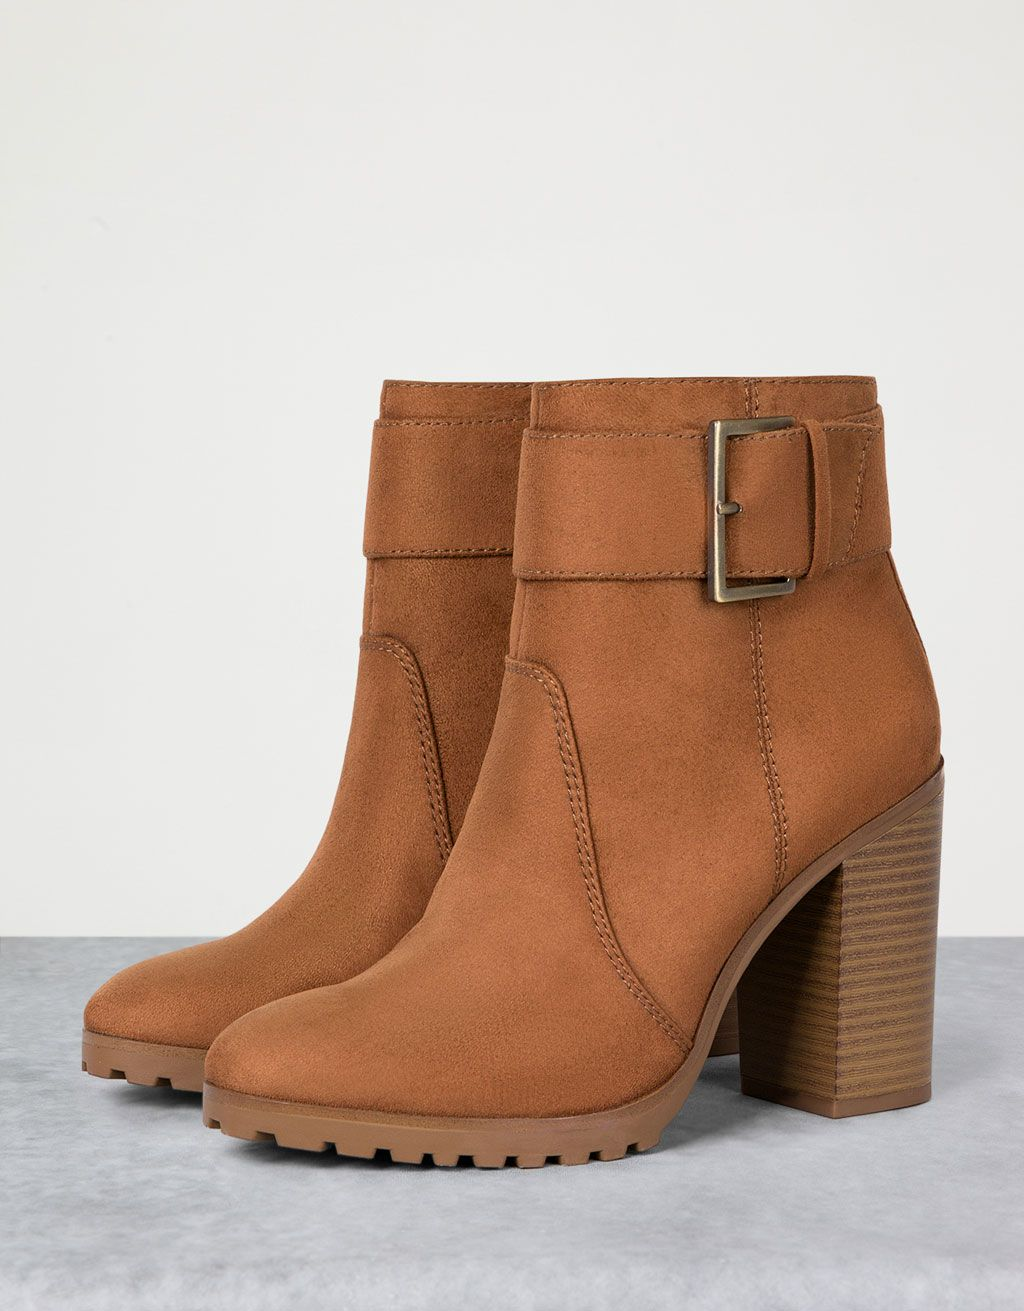 Buckle ankle boots - View All - Bershka Ukraine Zapatos Abotinados Mujer f4eb6911ca19